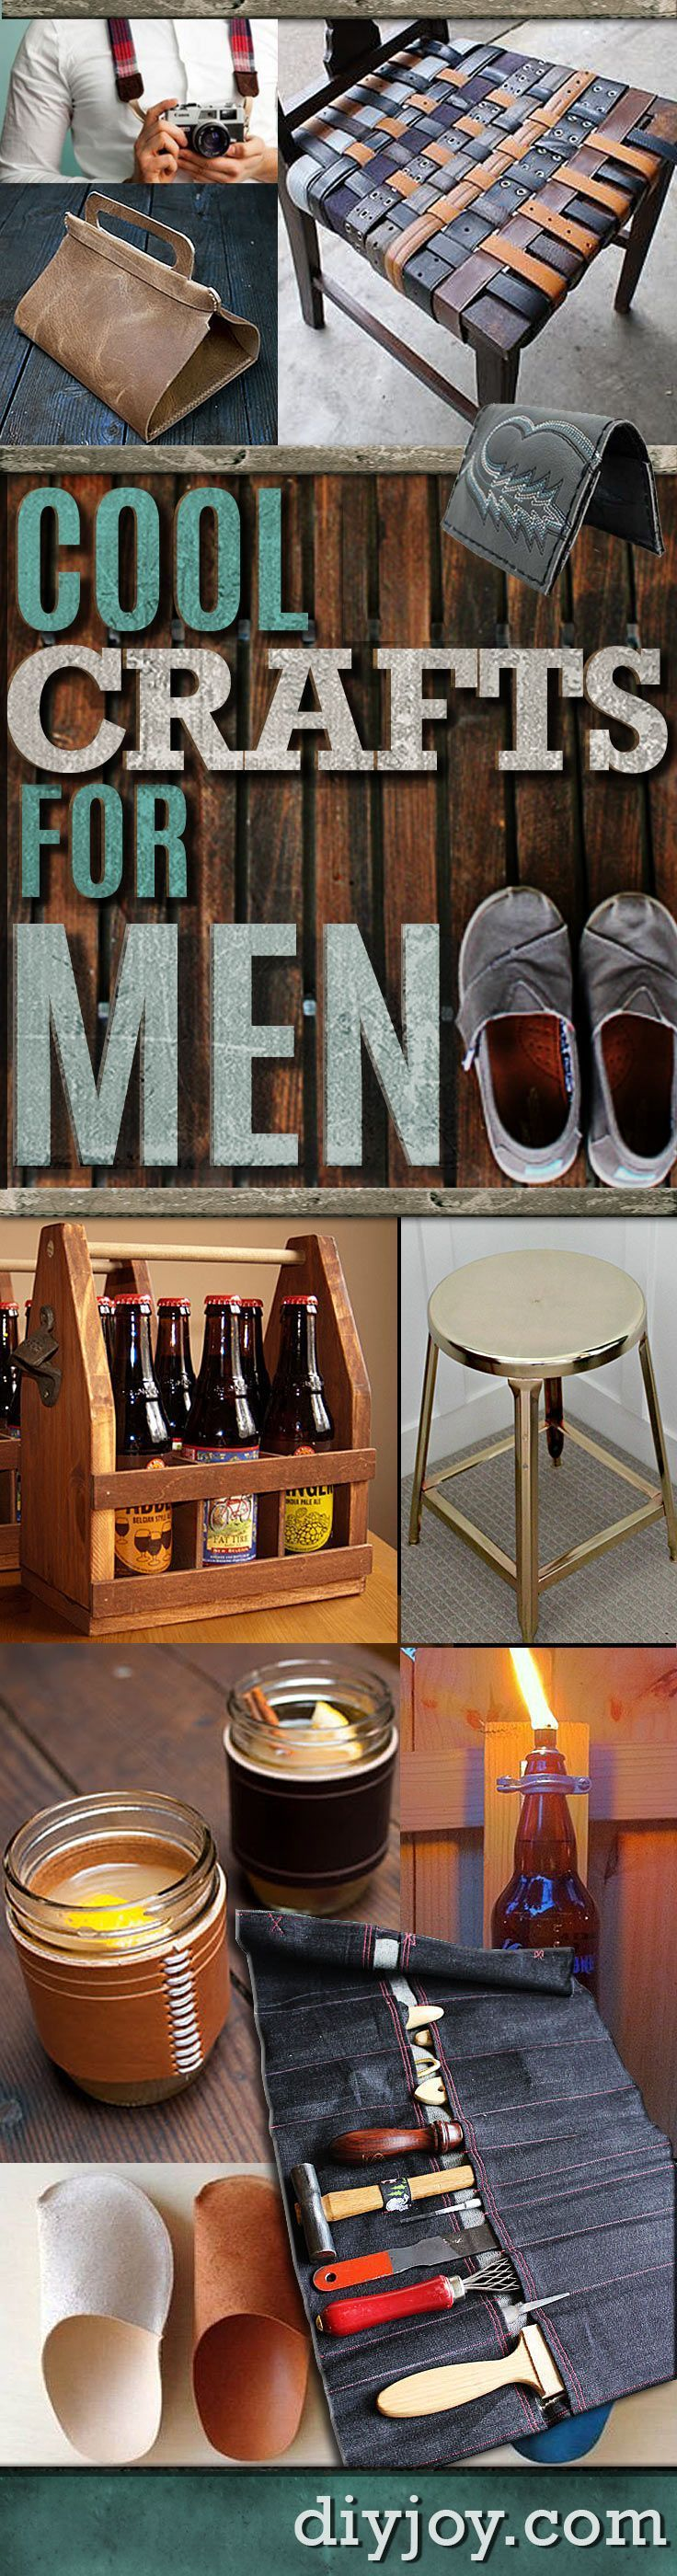 Awesome Crafts for Men and Manly DIY Project Ideas Guys Love - Fun Man Cave Ideas, Homemade Gifts, Manly Decor, Games and Gear. Tutorials for Creative Projects to Make This Weekend | Super DIY Gift Ideas for the Boyfriend, Husband, Brother and Father - Dad diyjoy.com/...